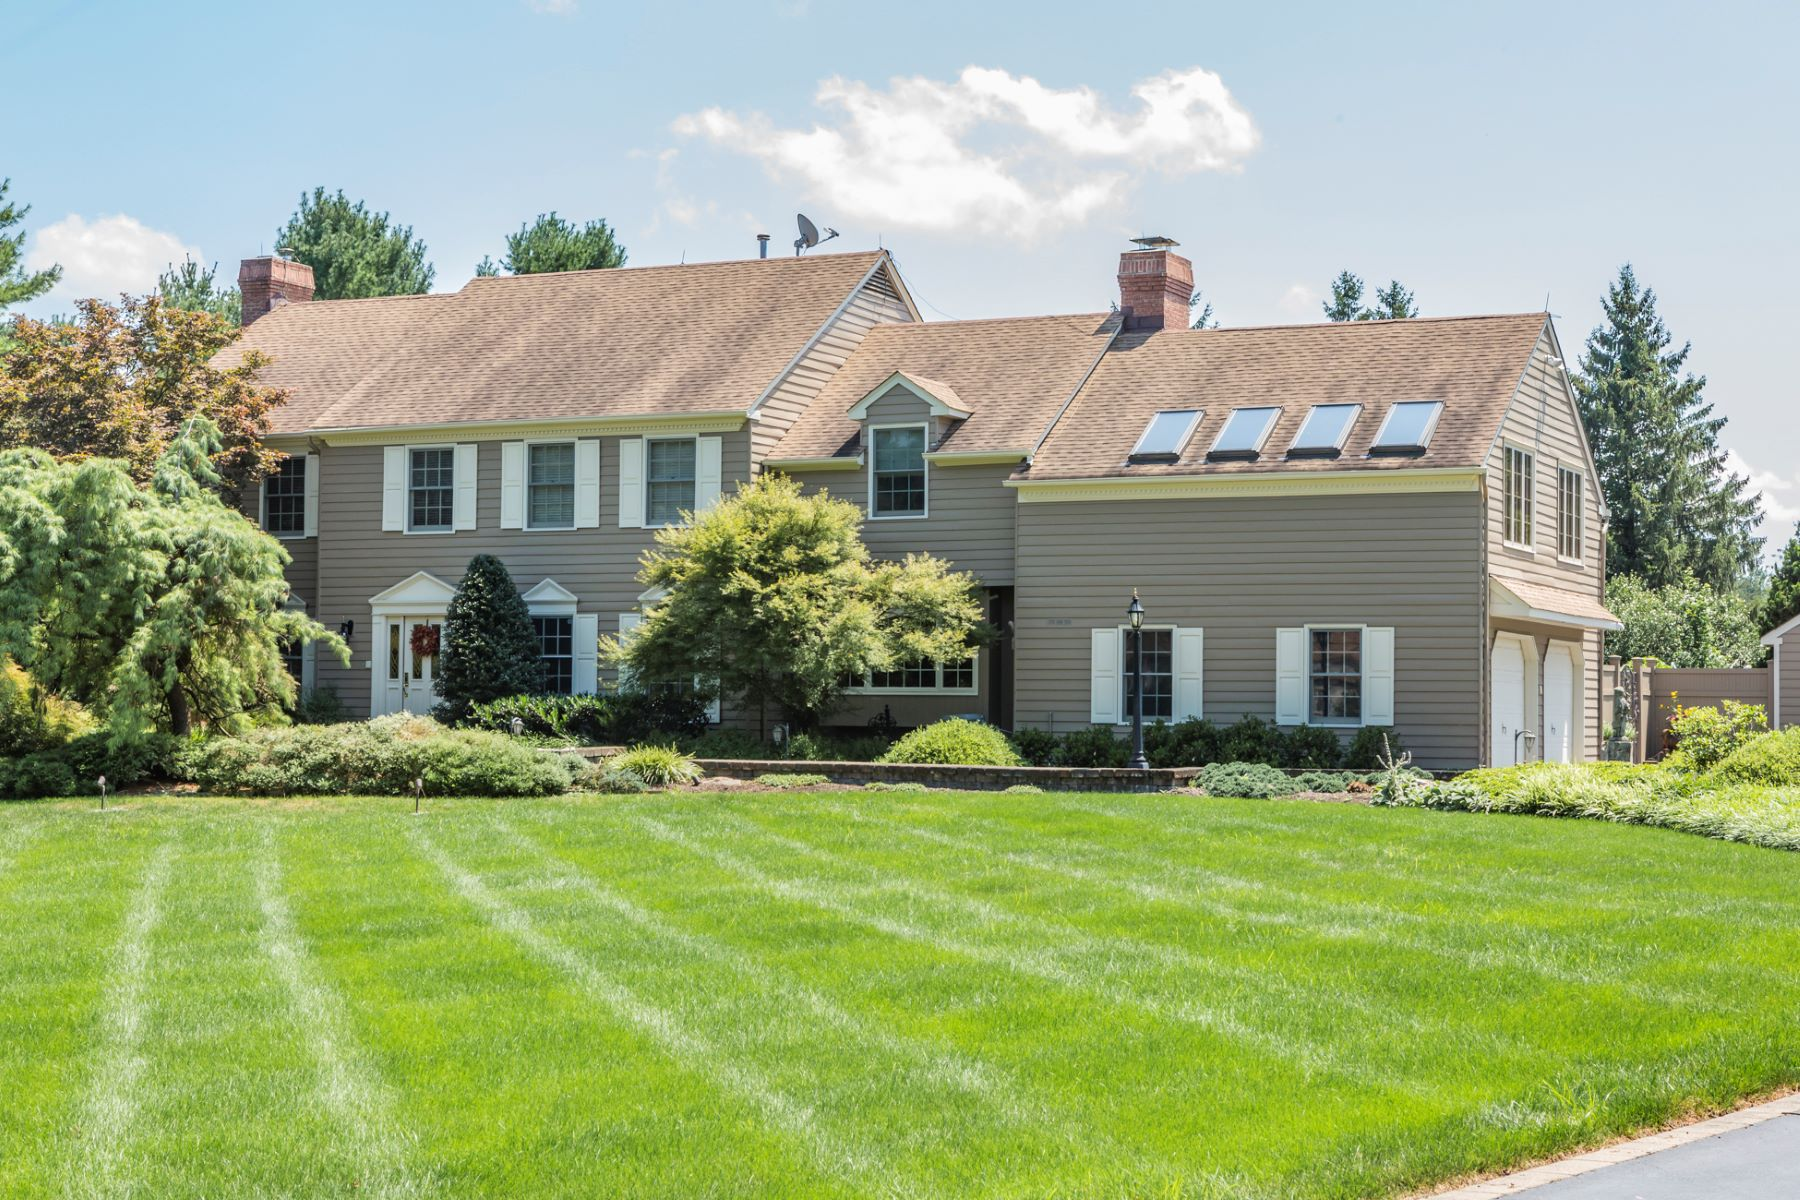 Casa Unifamiliar por un Venta en Style And Sophistication On Resort Style Grounds - Hopewell Township 14 Meadow Lane Pennington, Nueva Jersey 08534 Estados UnidosEn/Alrededor: Hopewell Township